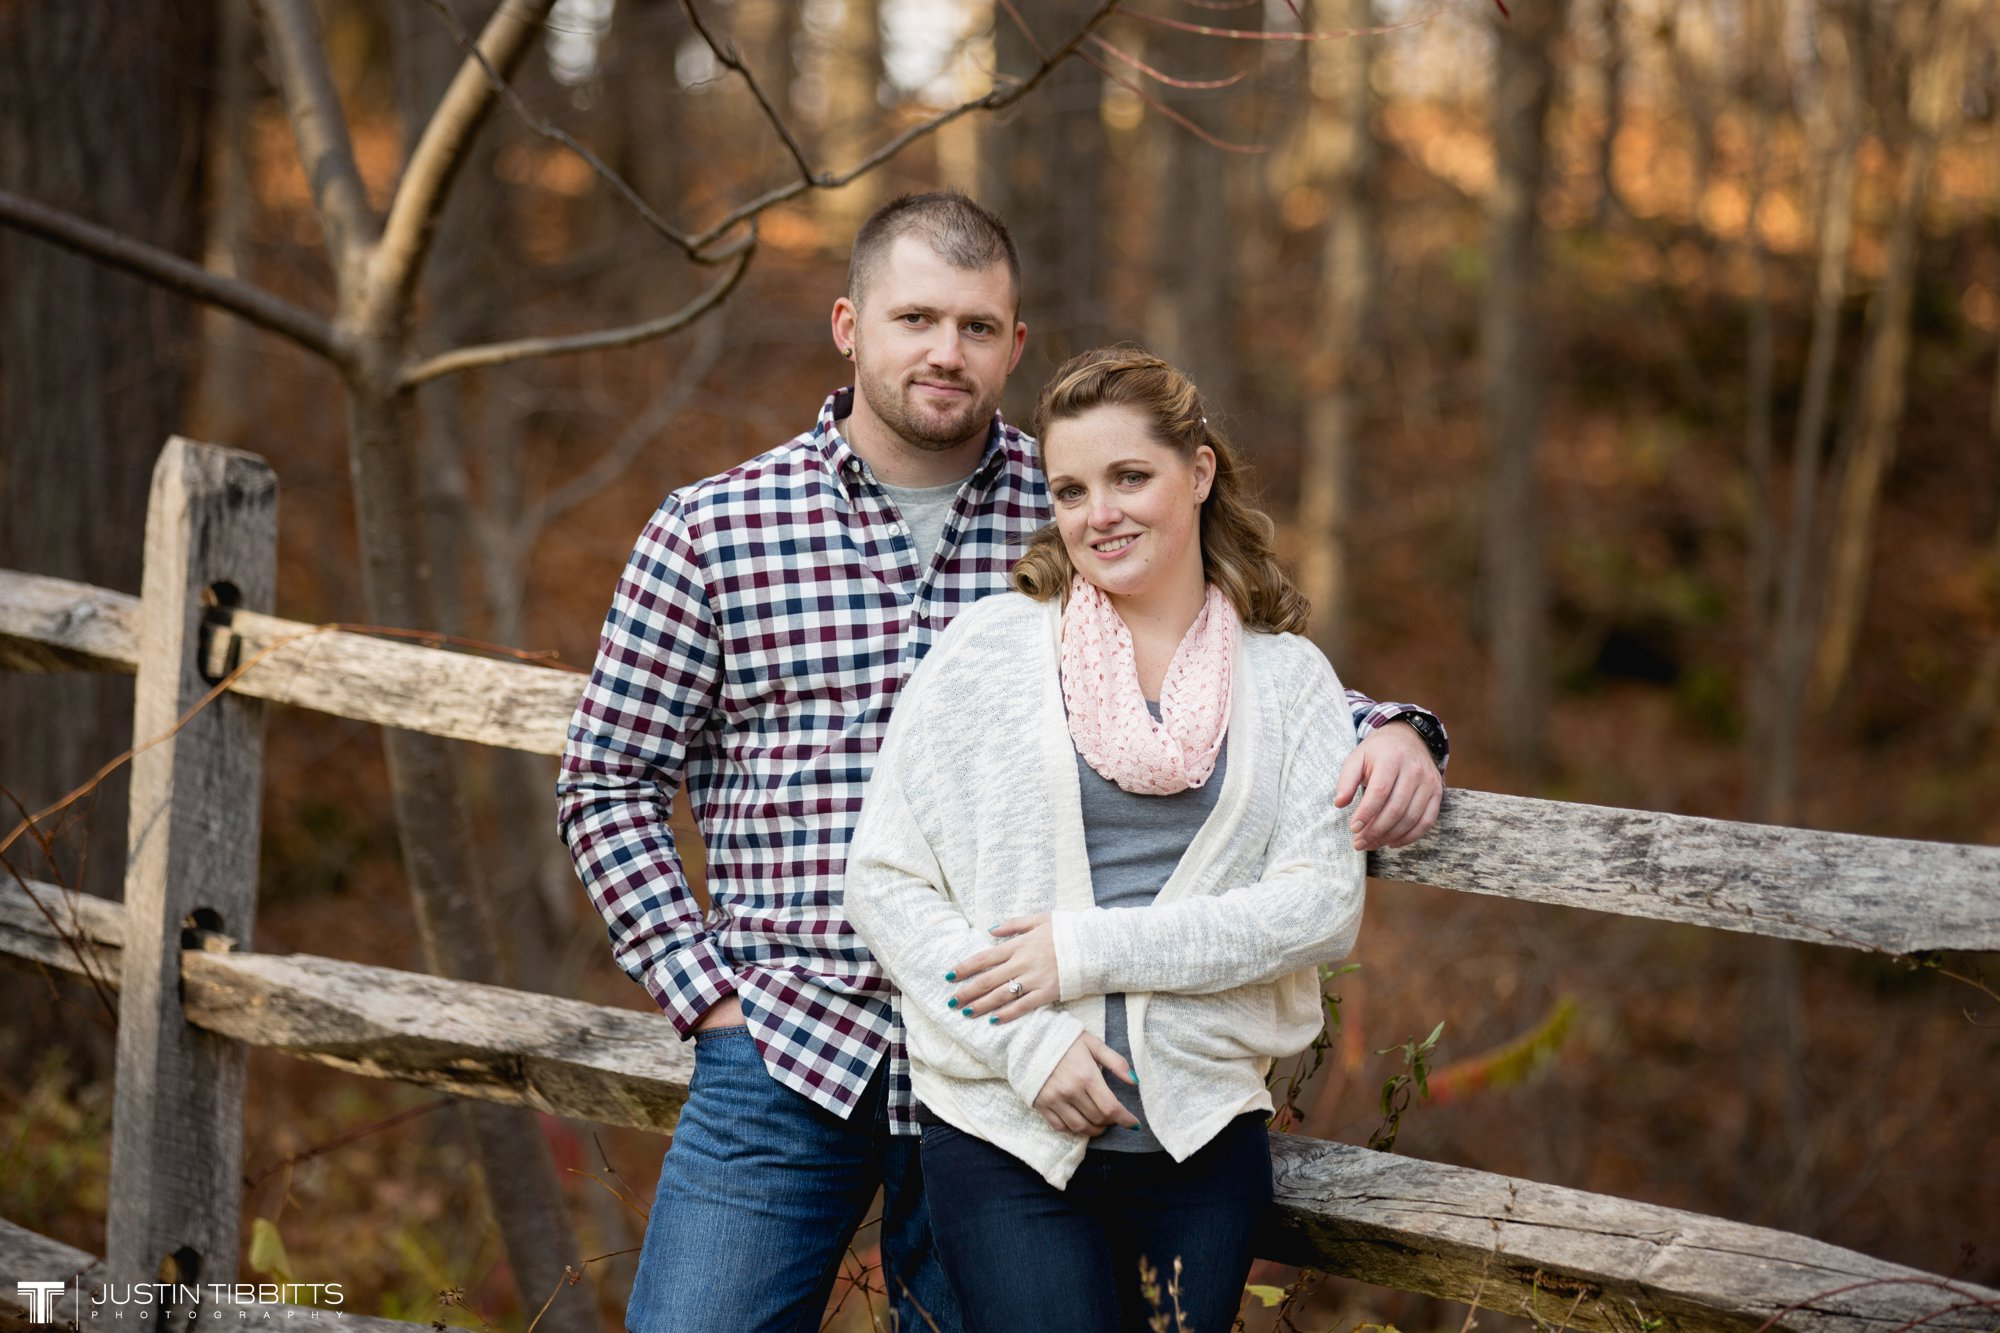 Justin Tibbitts Photography Ashlee and Steves Thatcher Park, New York Engagement Shoot-65